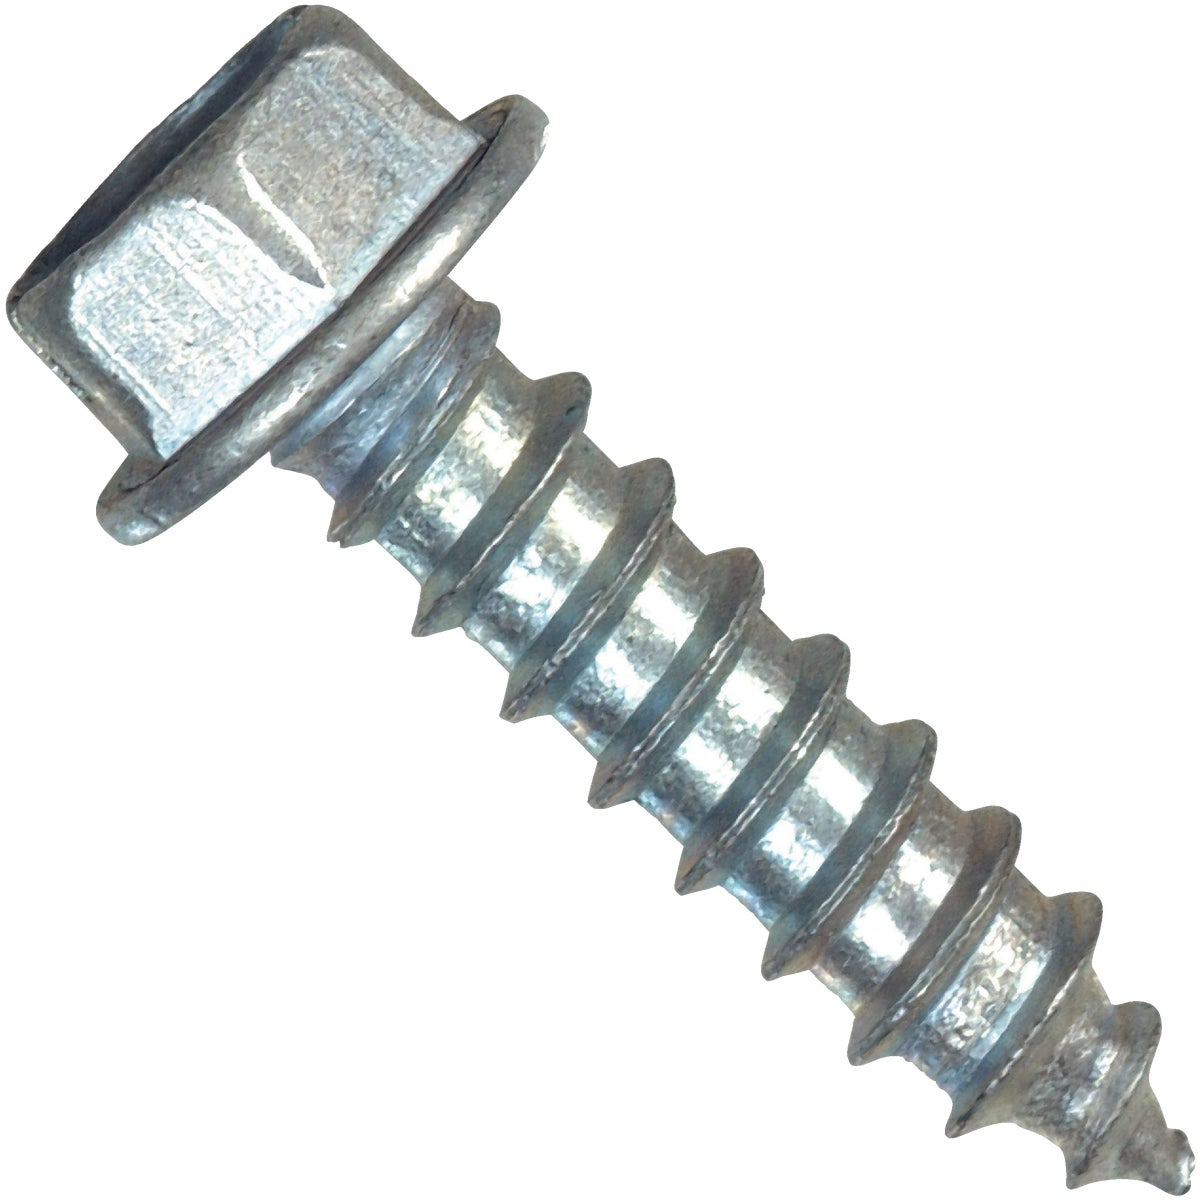 1/4X2 HWH SHT MTL SCREW - 70343 by Hillman Fastener